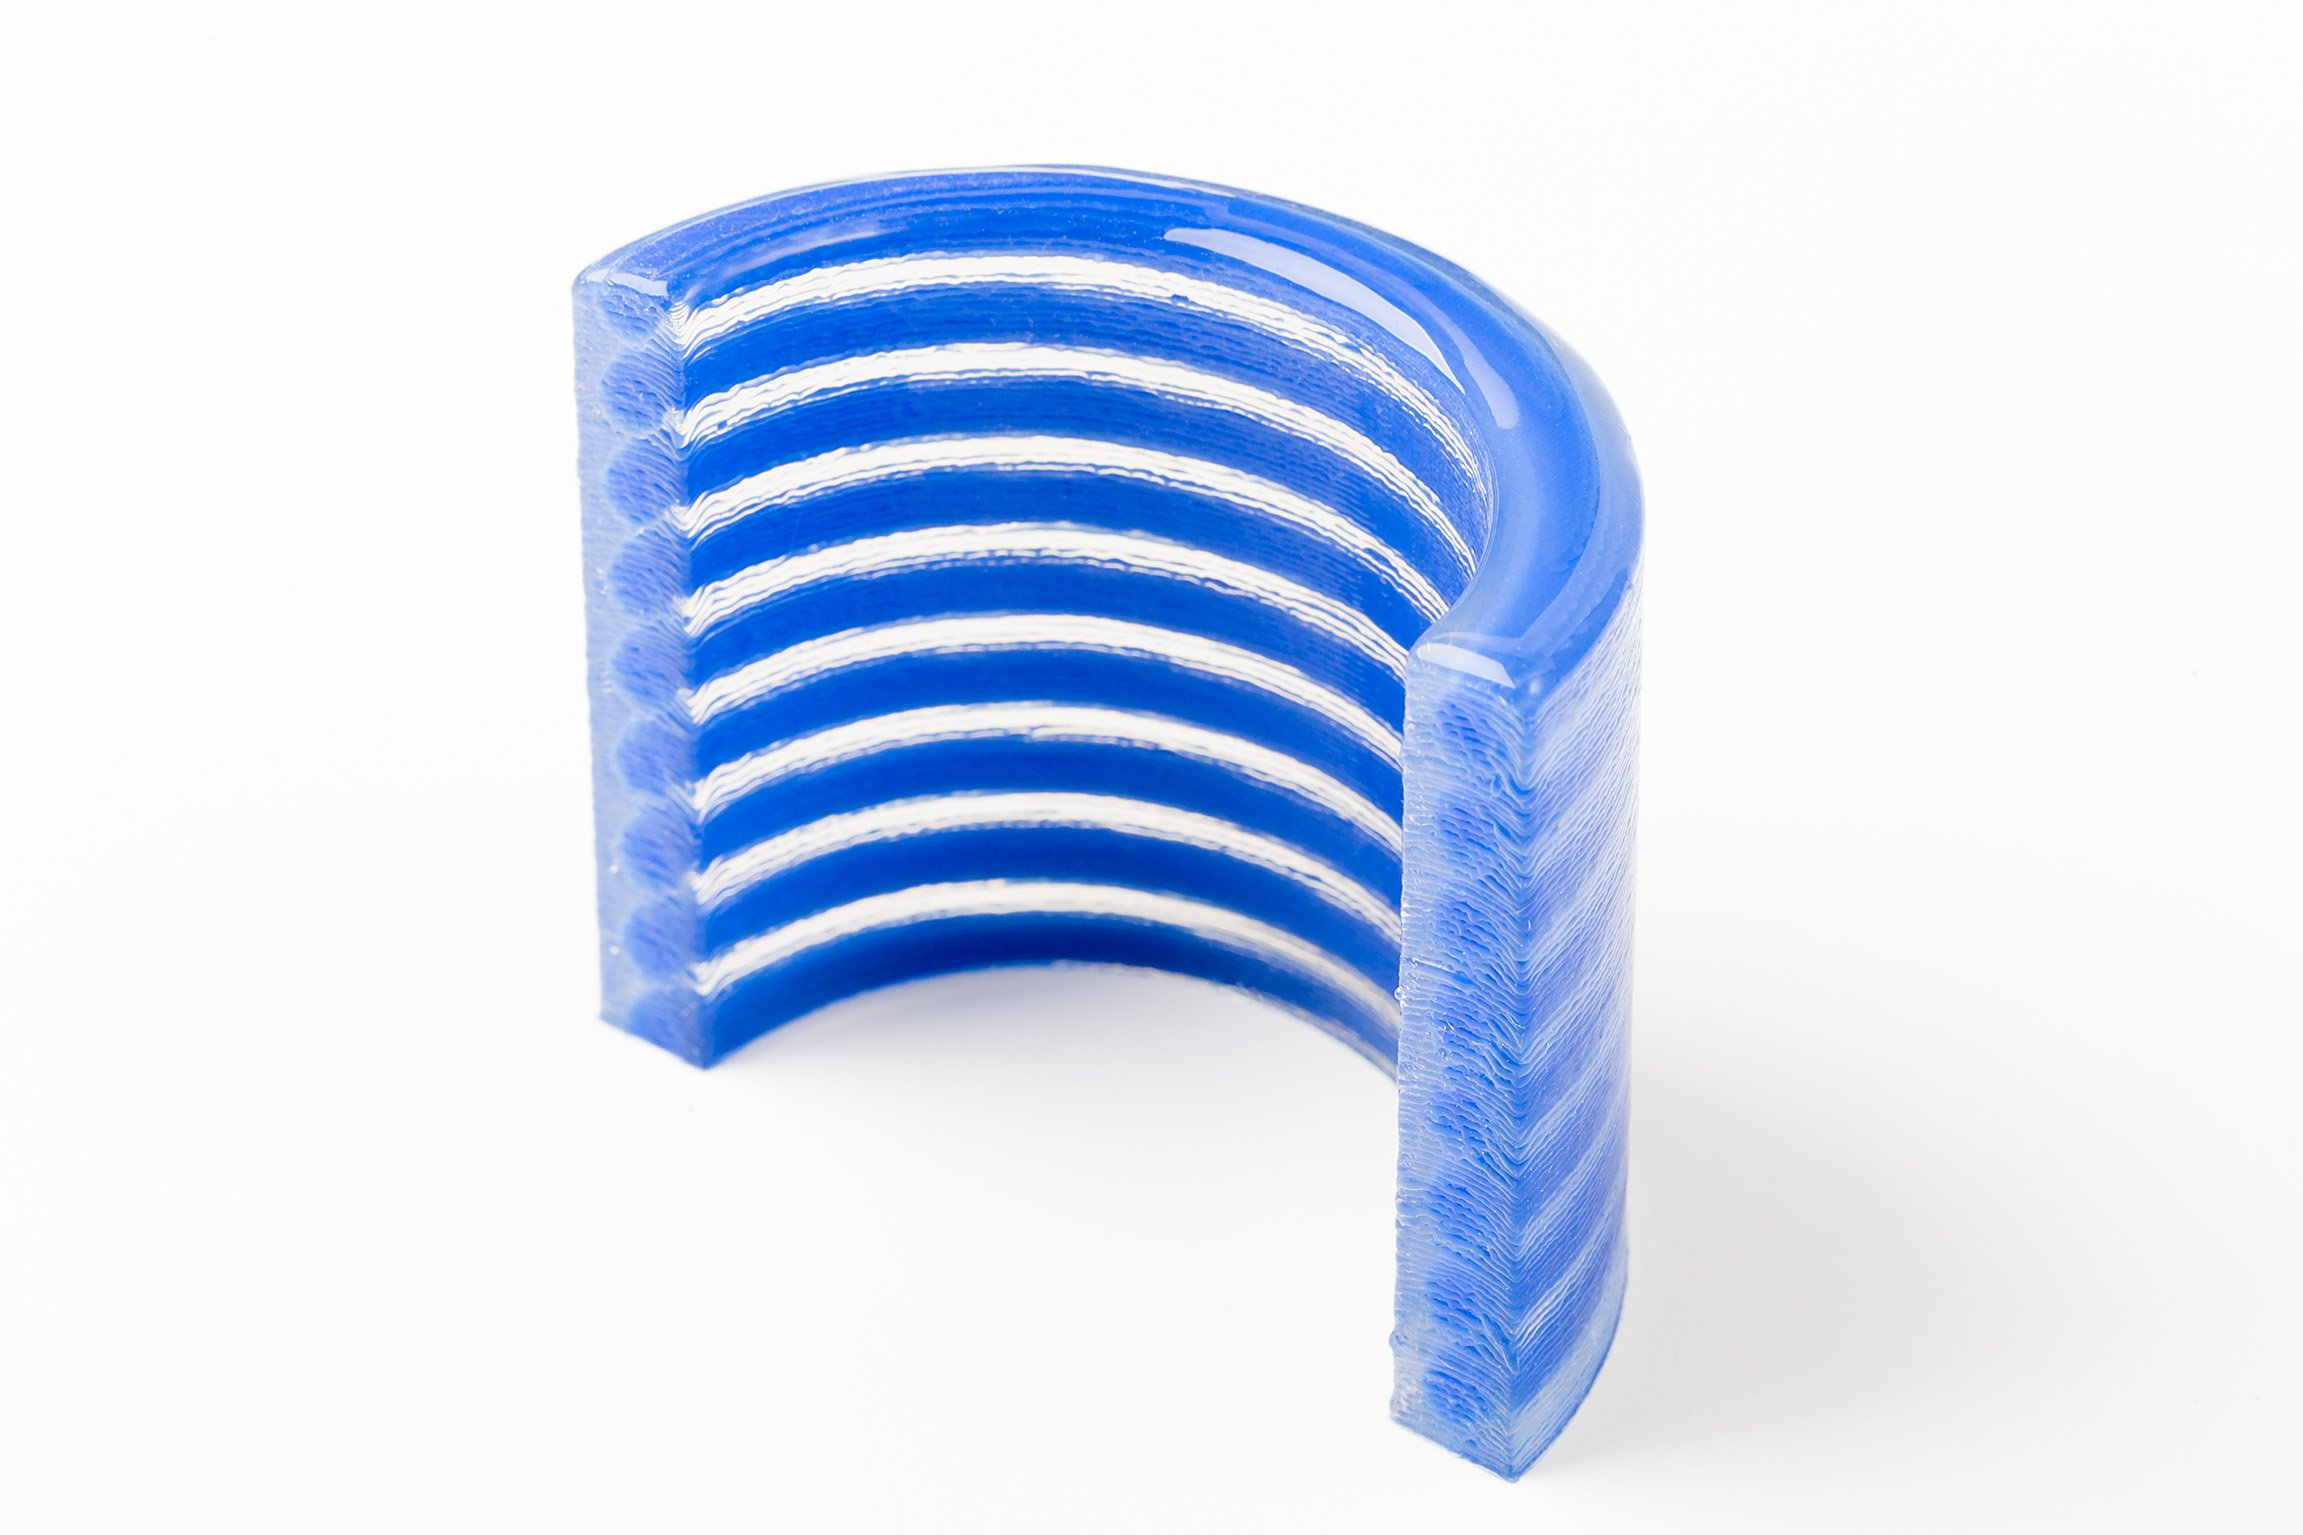 ACEO silicone 3D-printed part